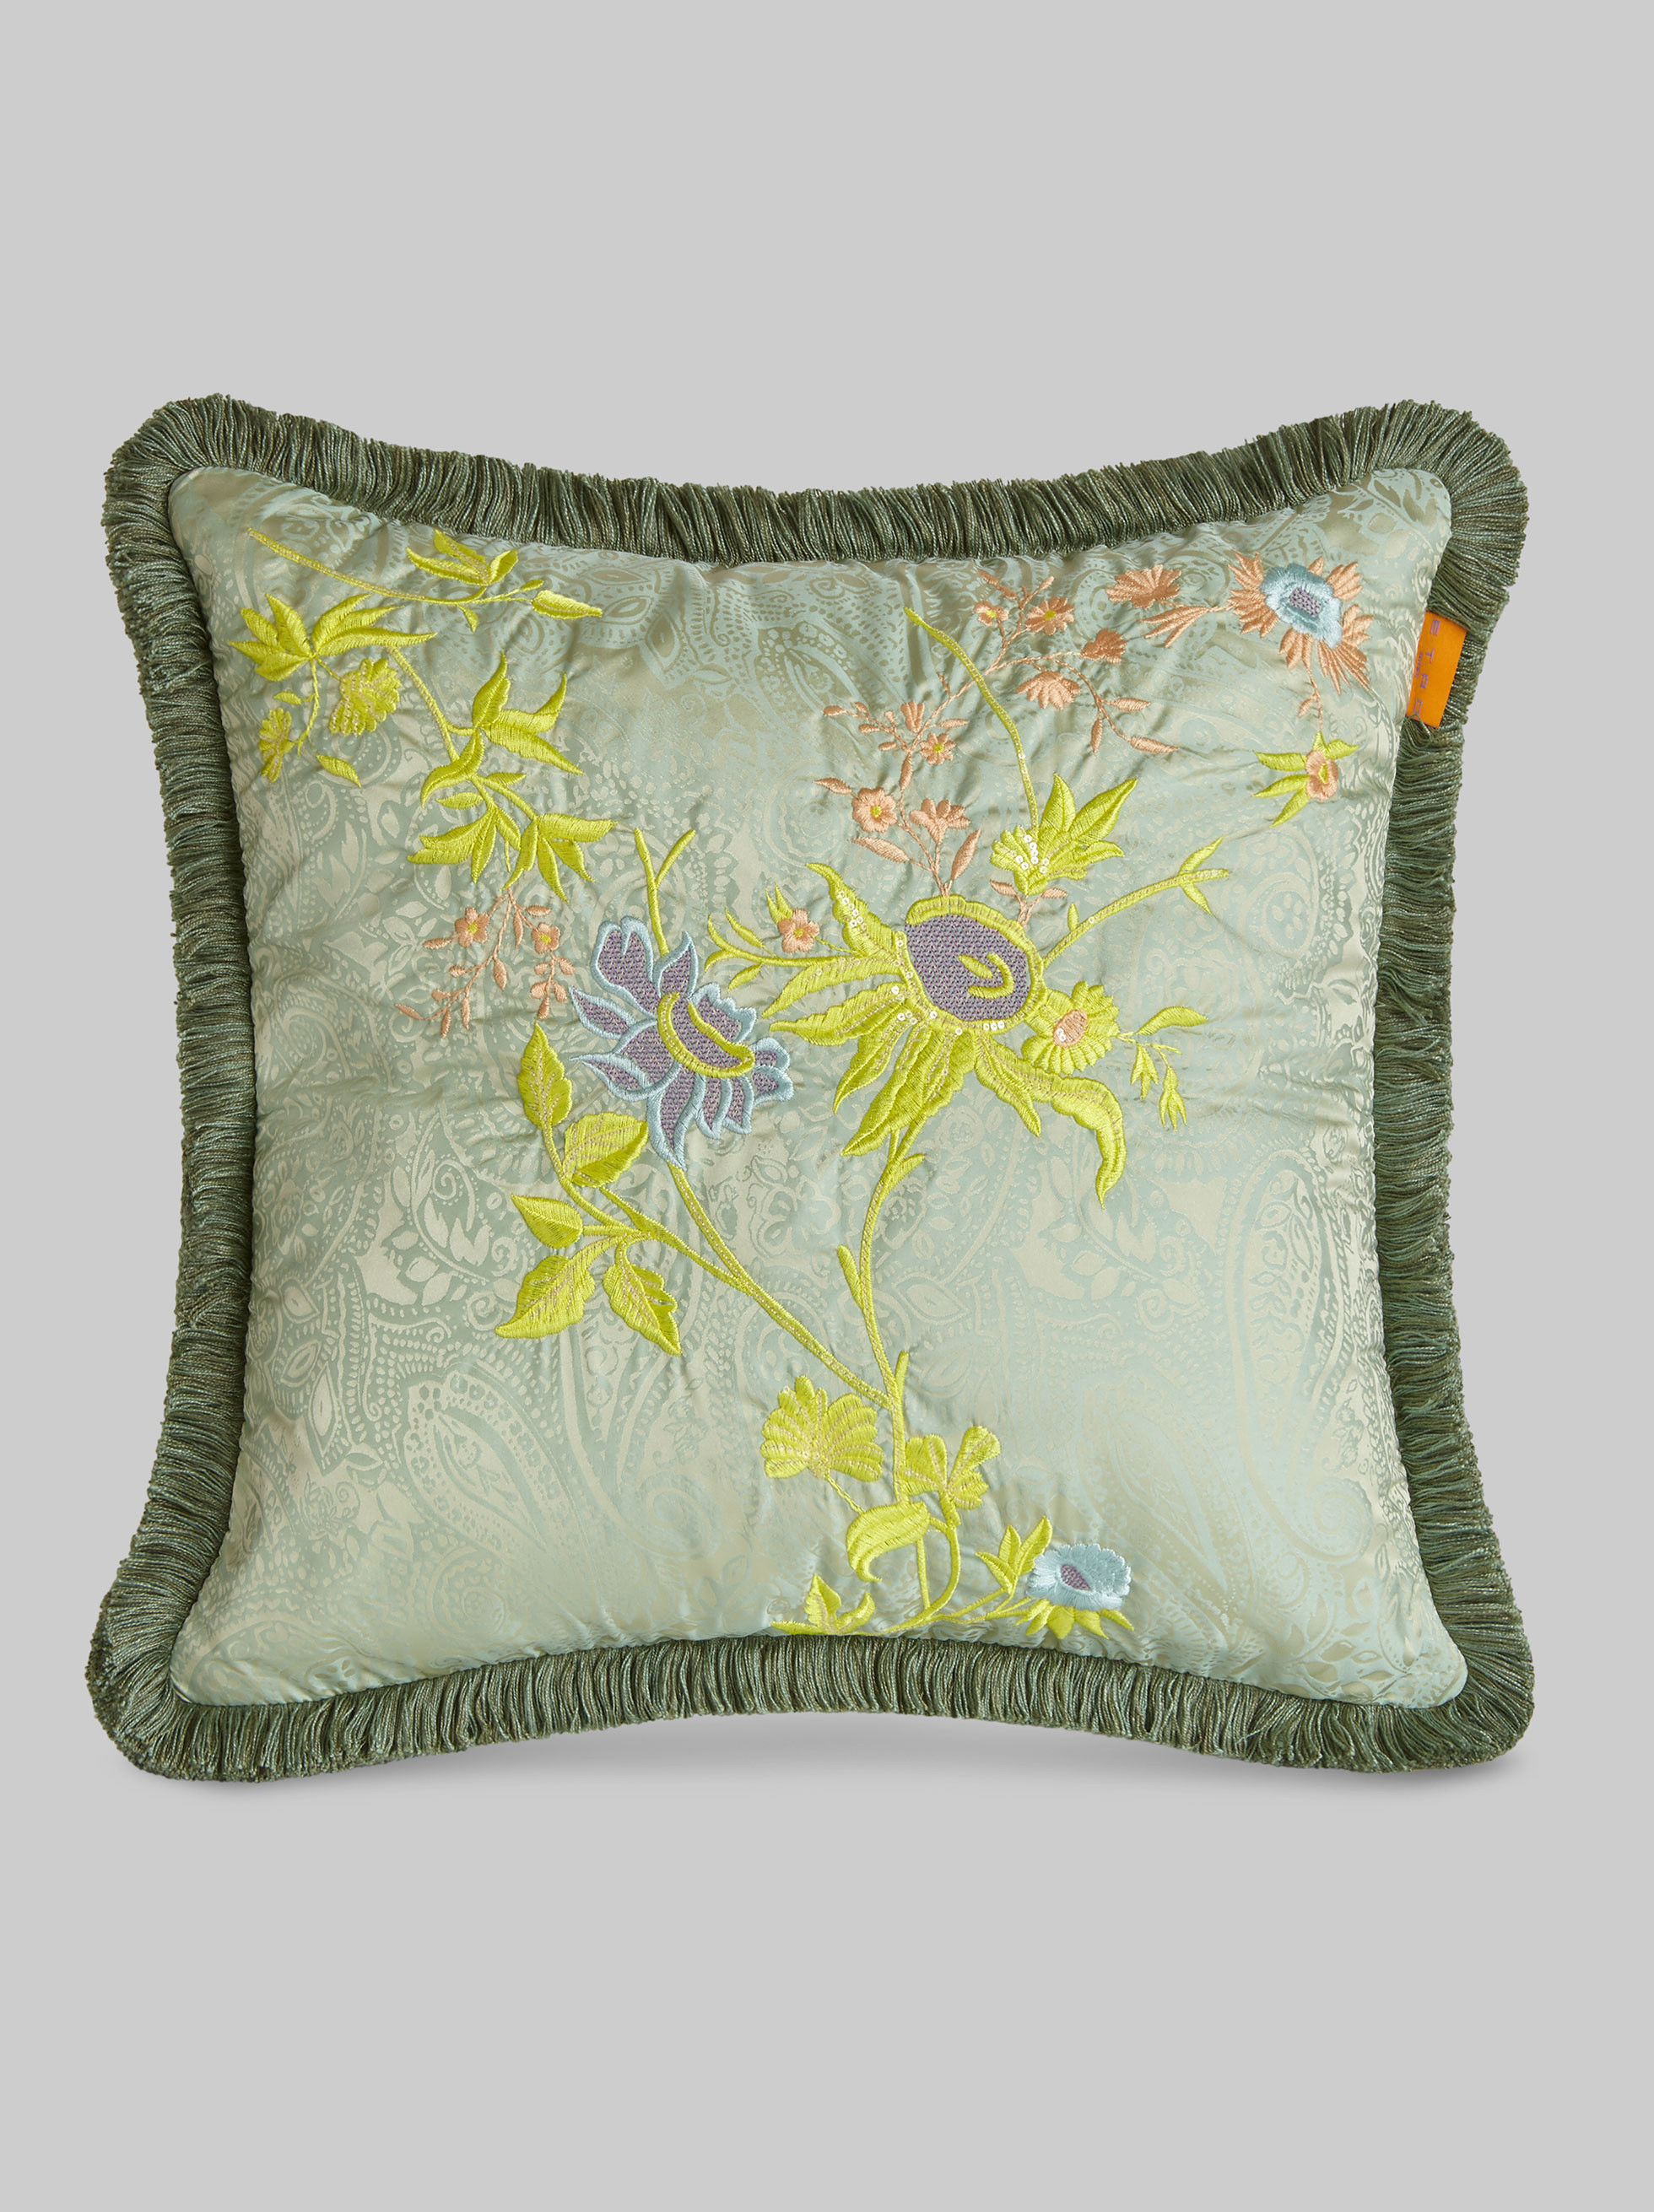 EMBROIDERED CUSHION WITH FLORAL DECORATIONS